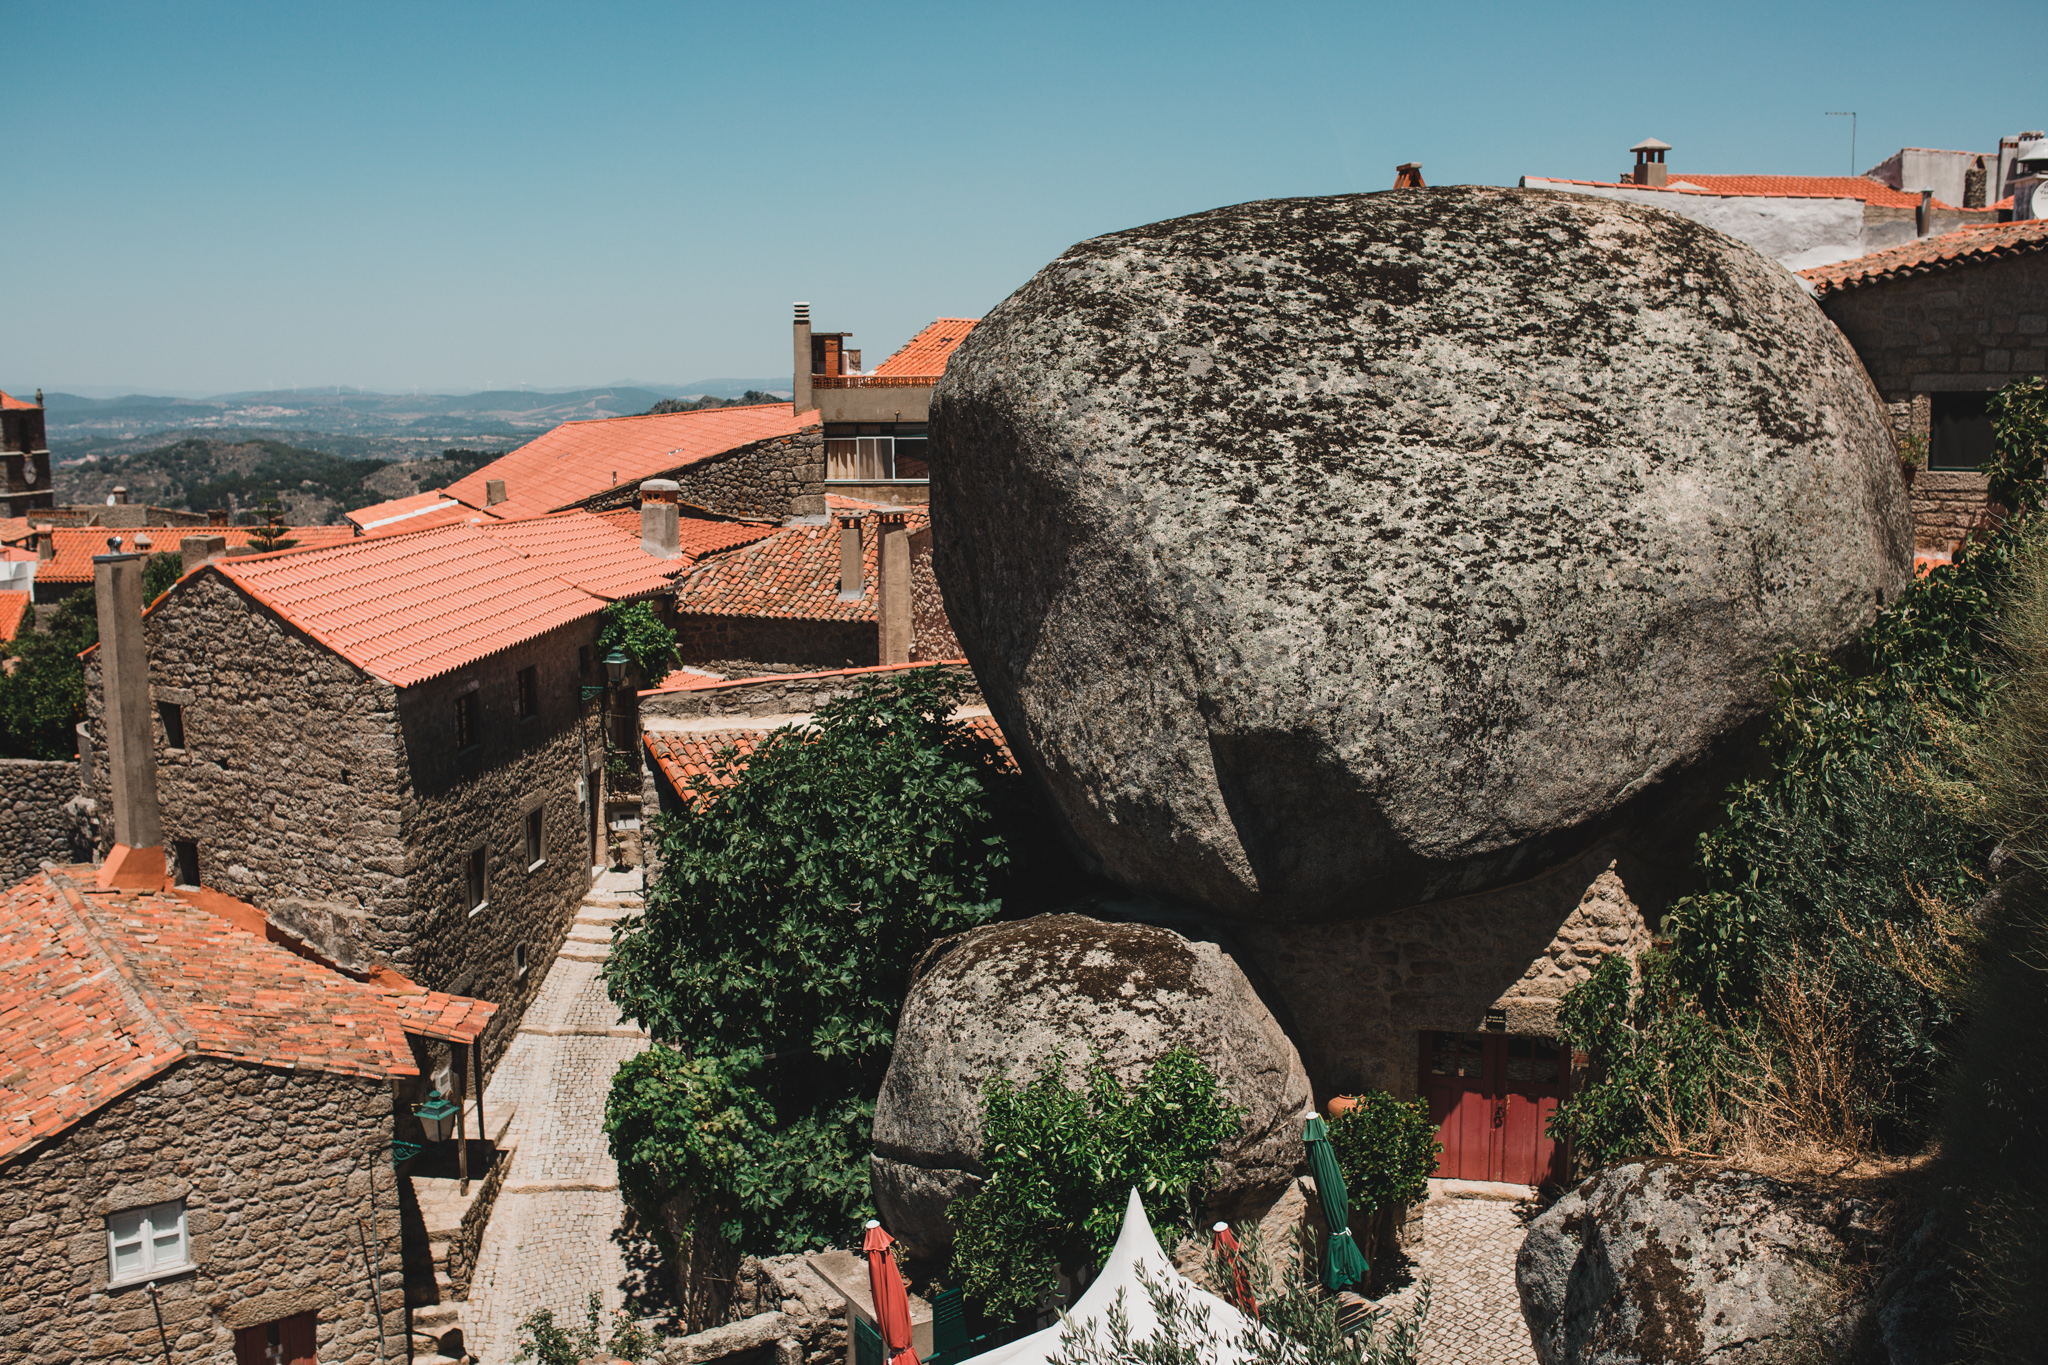 Monsanto, Portugal - Best Medieval Town, Picturesque boulders